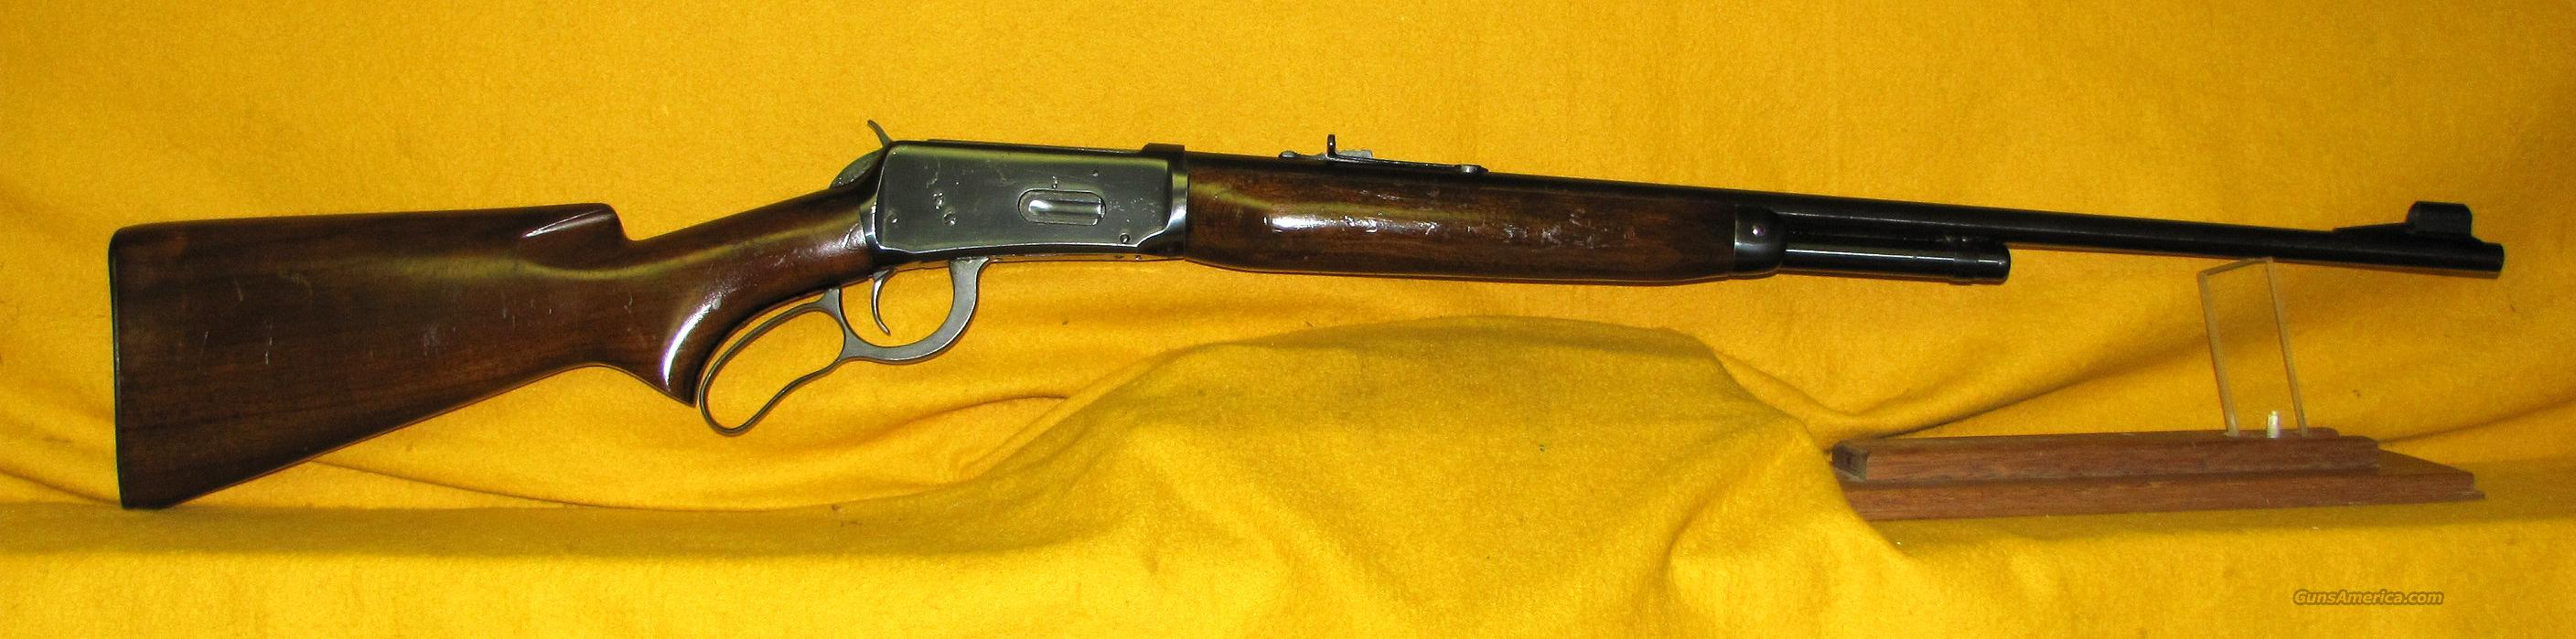 WINCHESTER (PRE 64) 64   Guns > Rifles > Winchester Rifles - Modern Lever > Other Lever > Pre-64